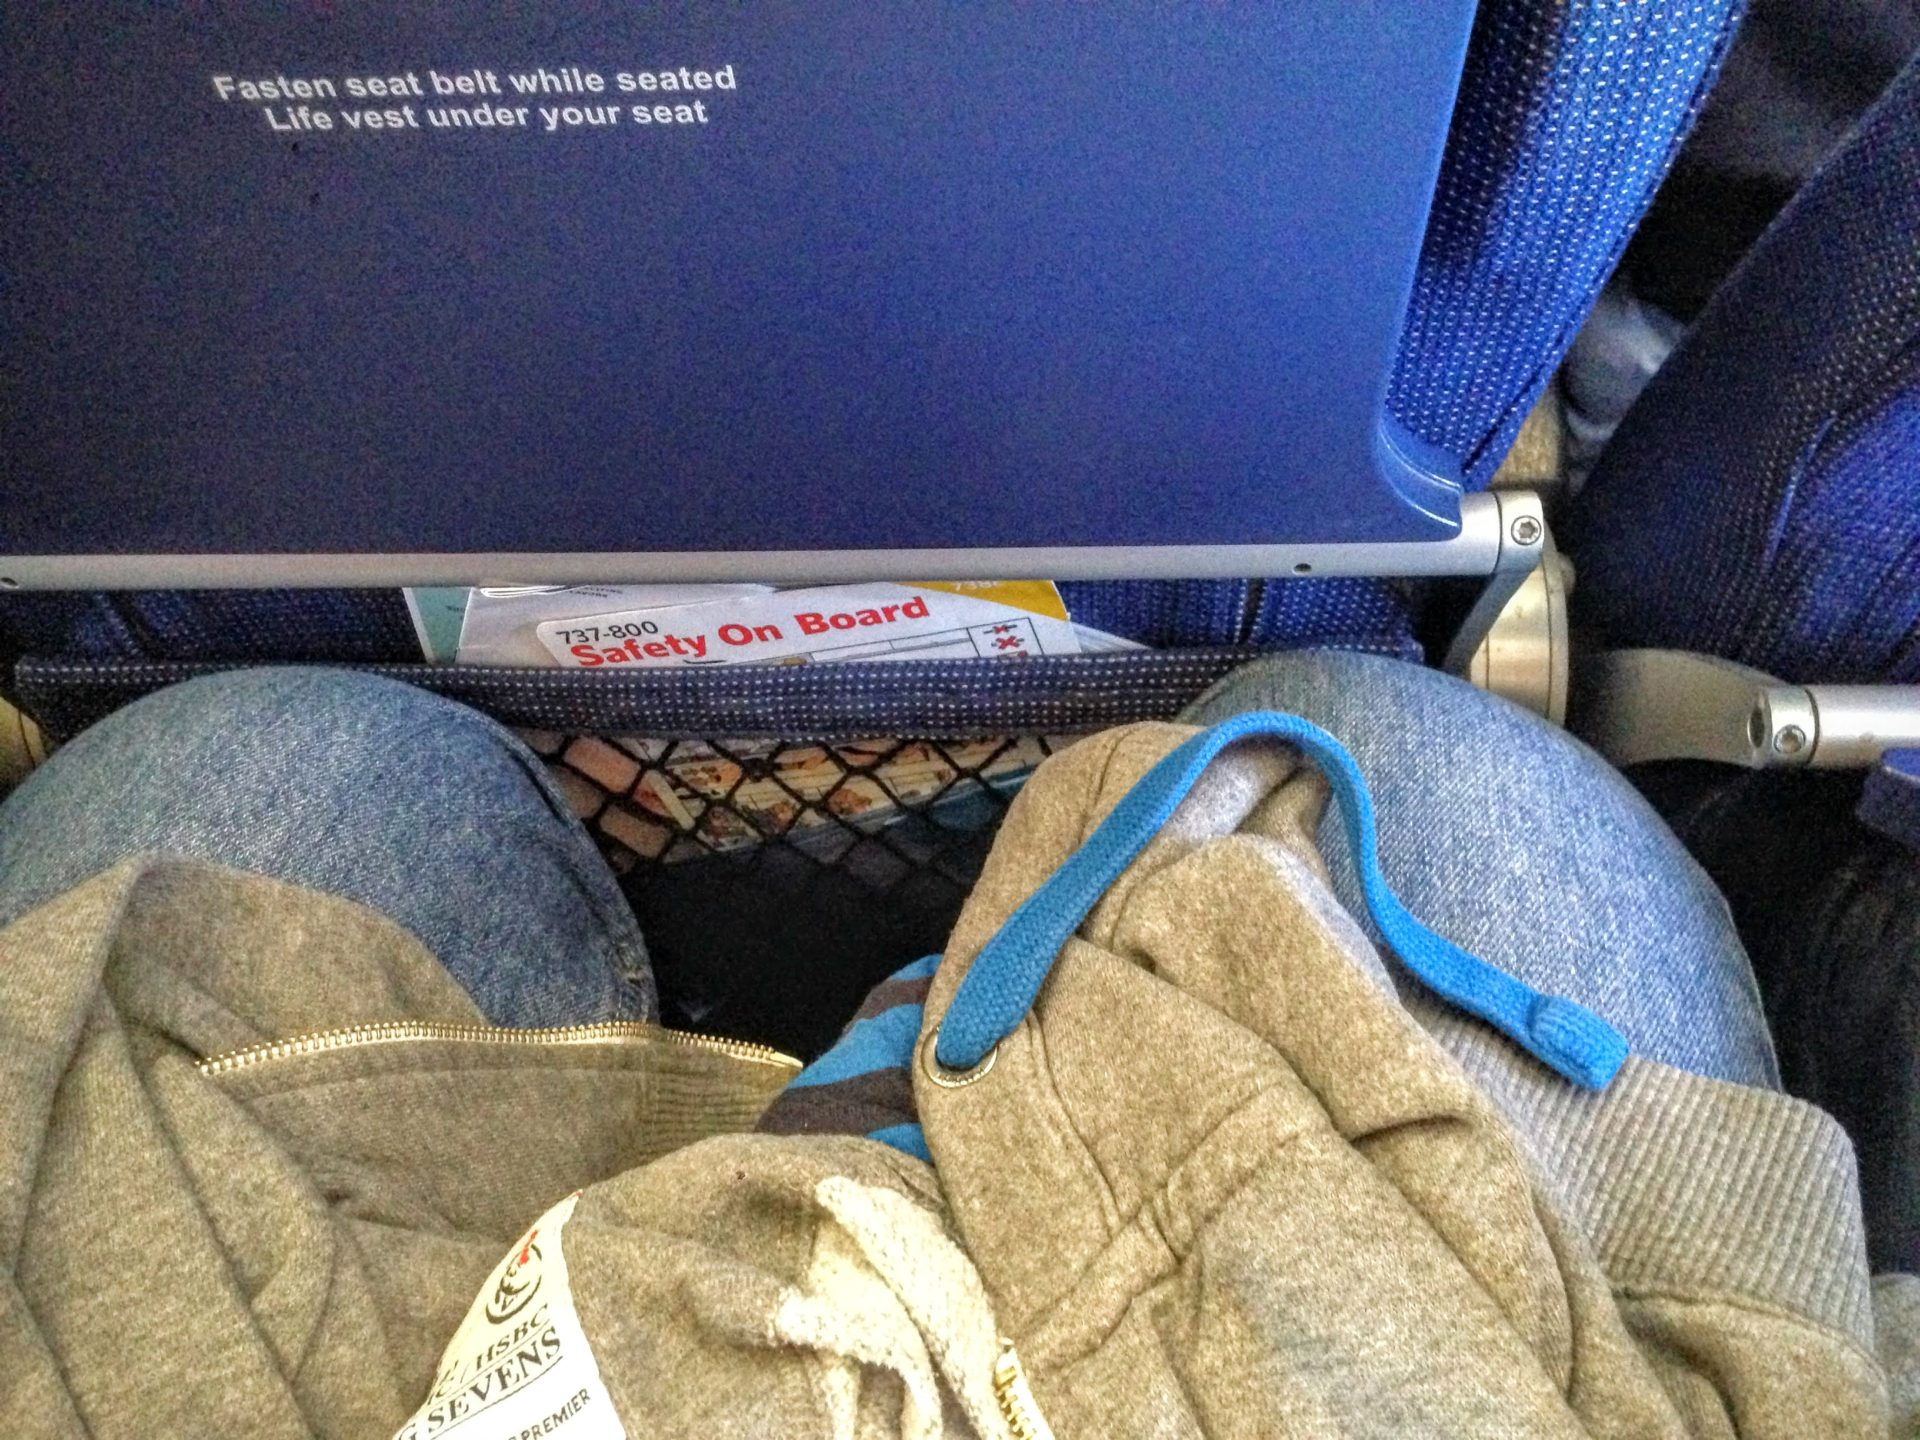 Tight legspace on lufhansa flight